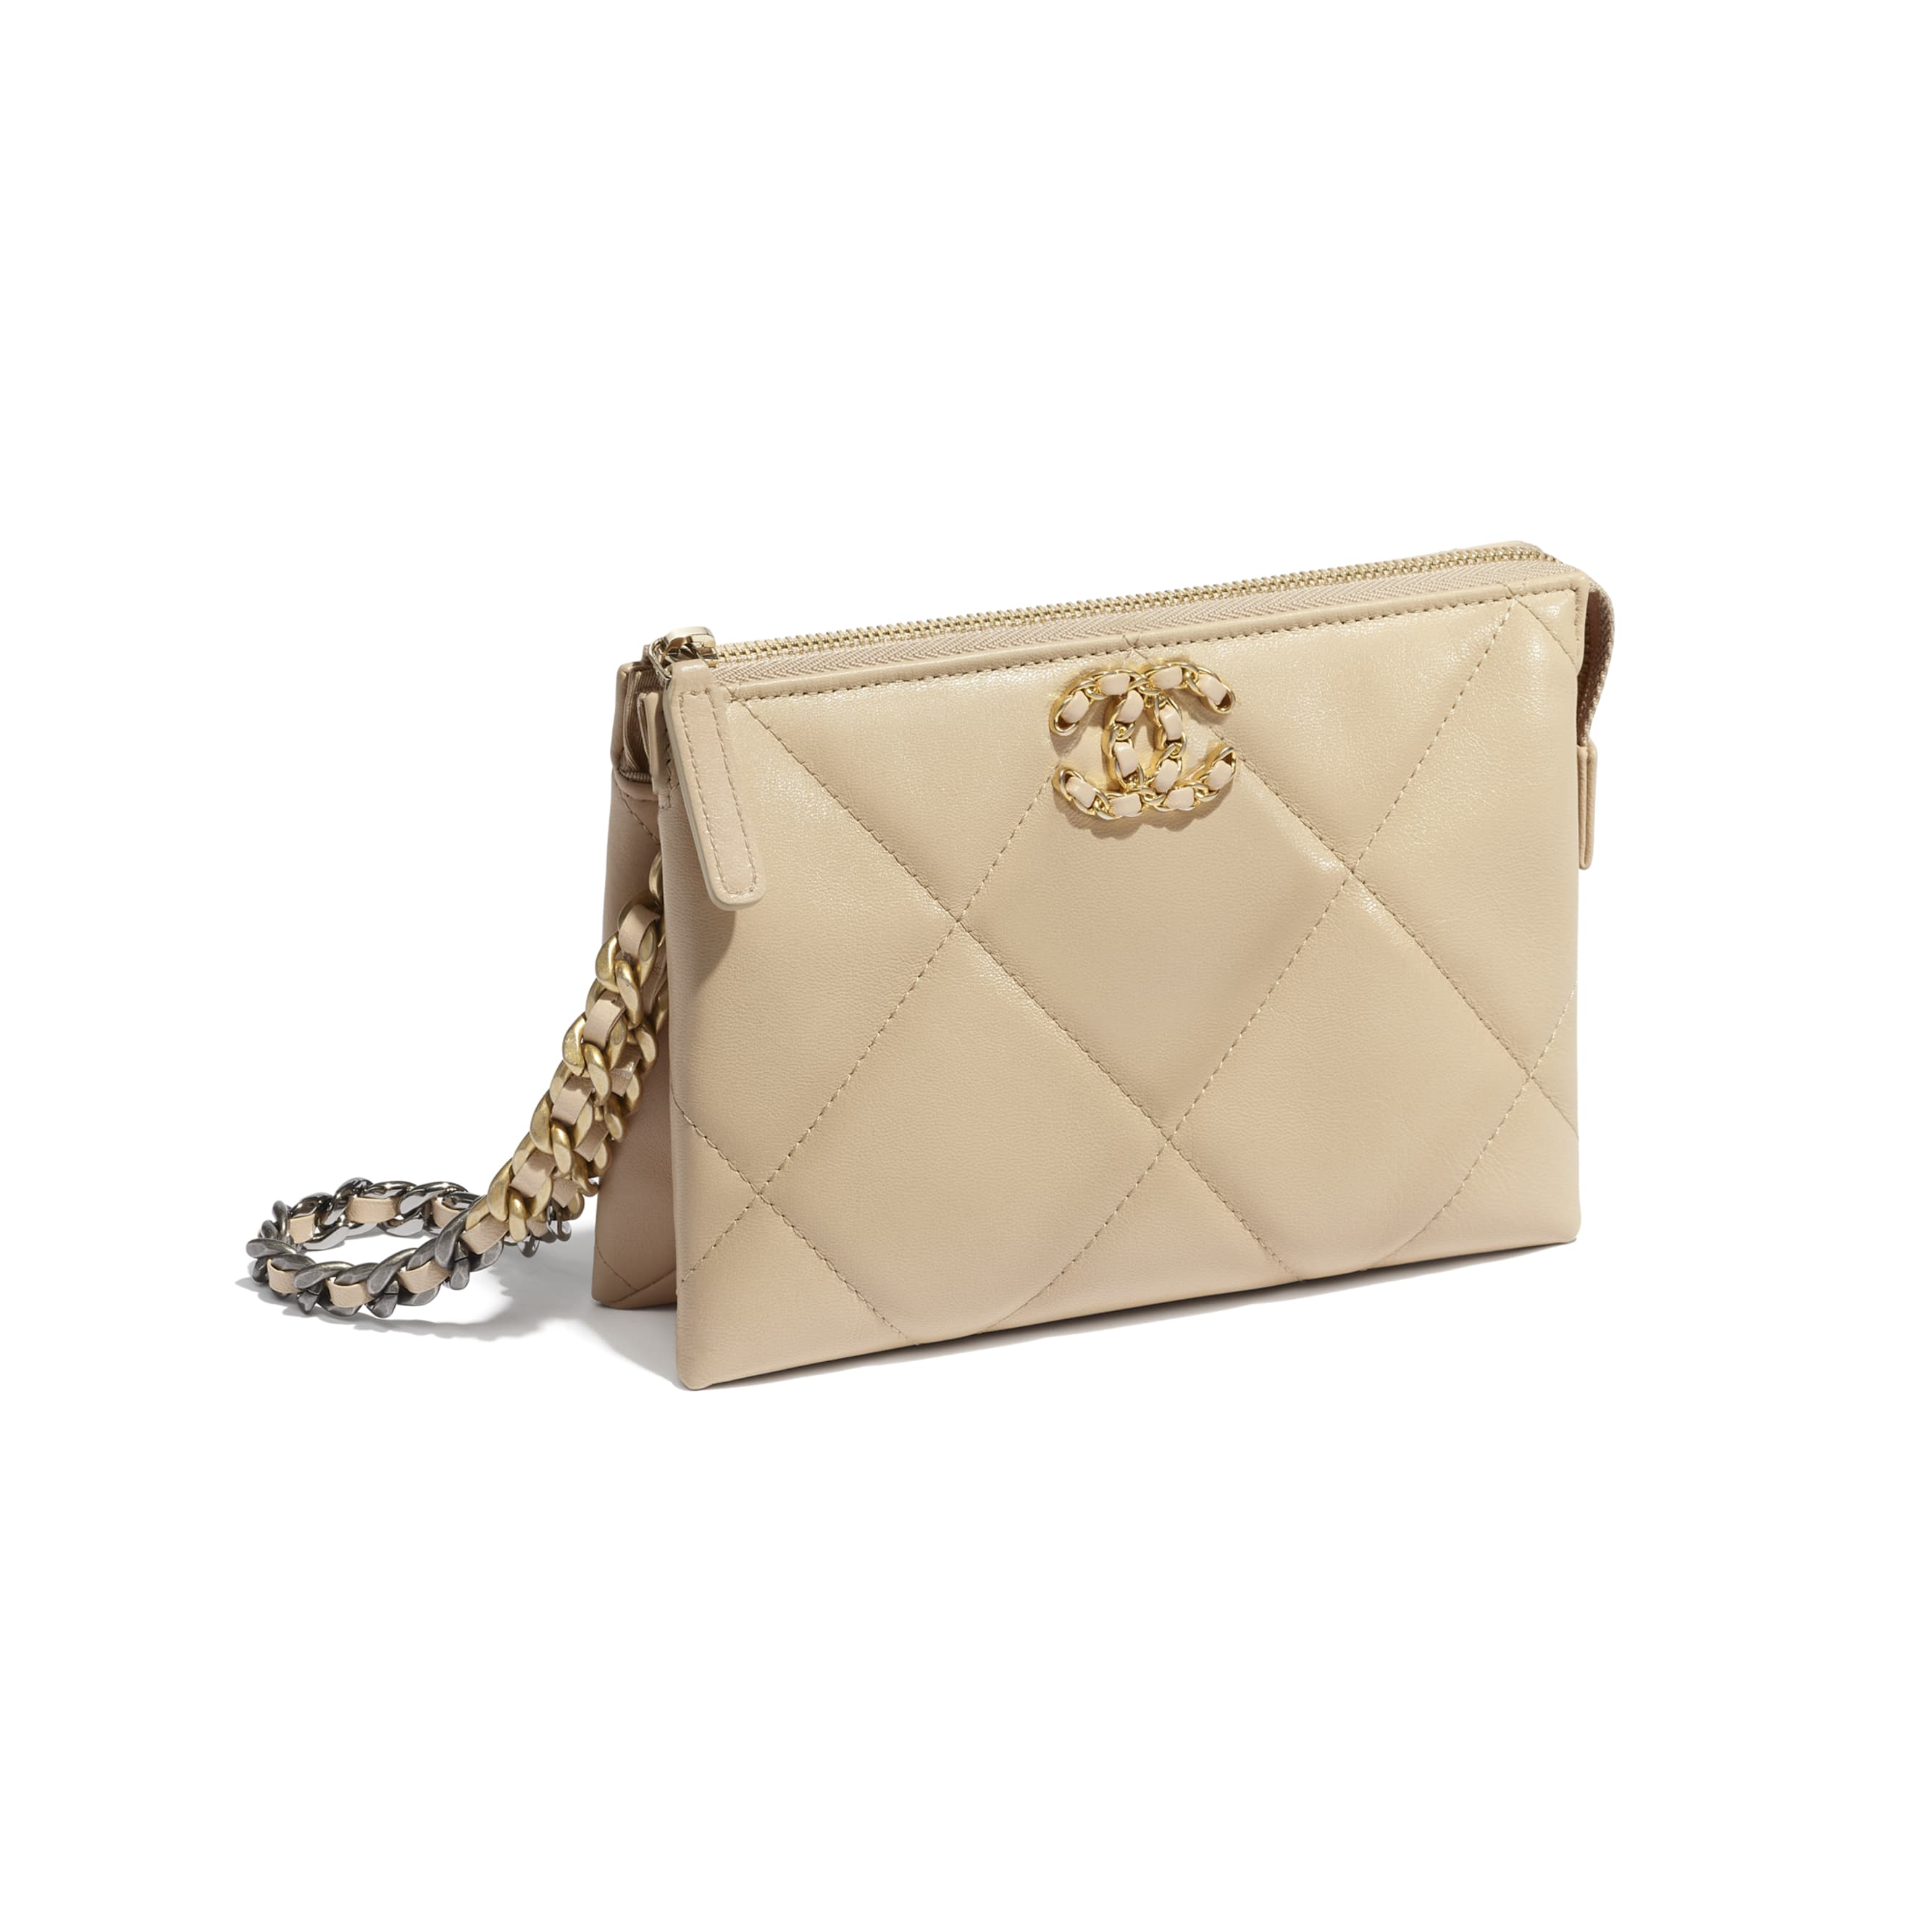 CHANEL 19 Small Pouch with Handle - Beige - Shiny Goatskin, Gold-Tone, Silver-Tone & Ruthenium-Finish Metal - CHANEL - Other view - see standard sized version